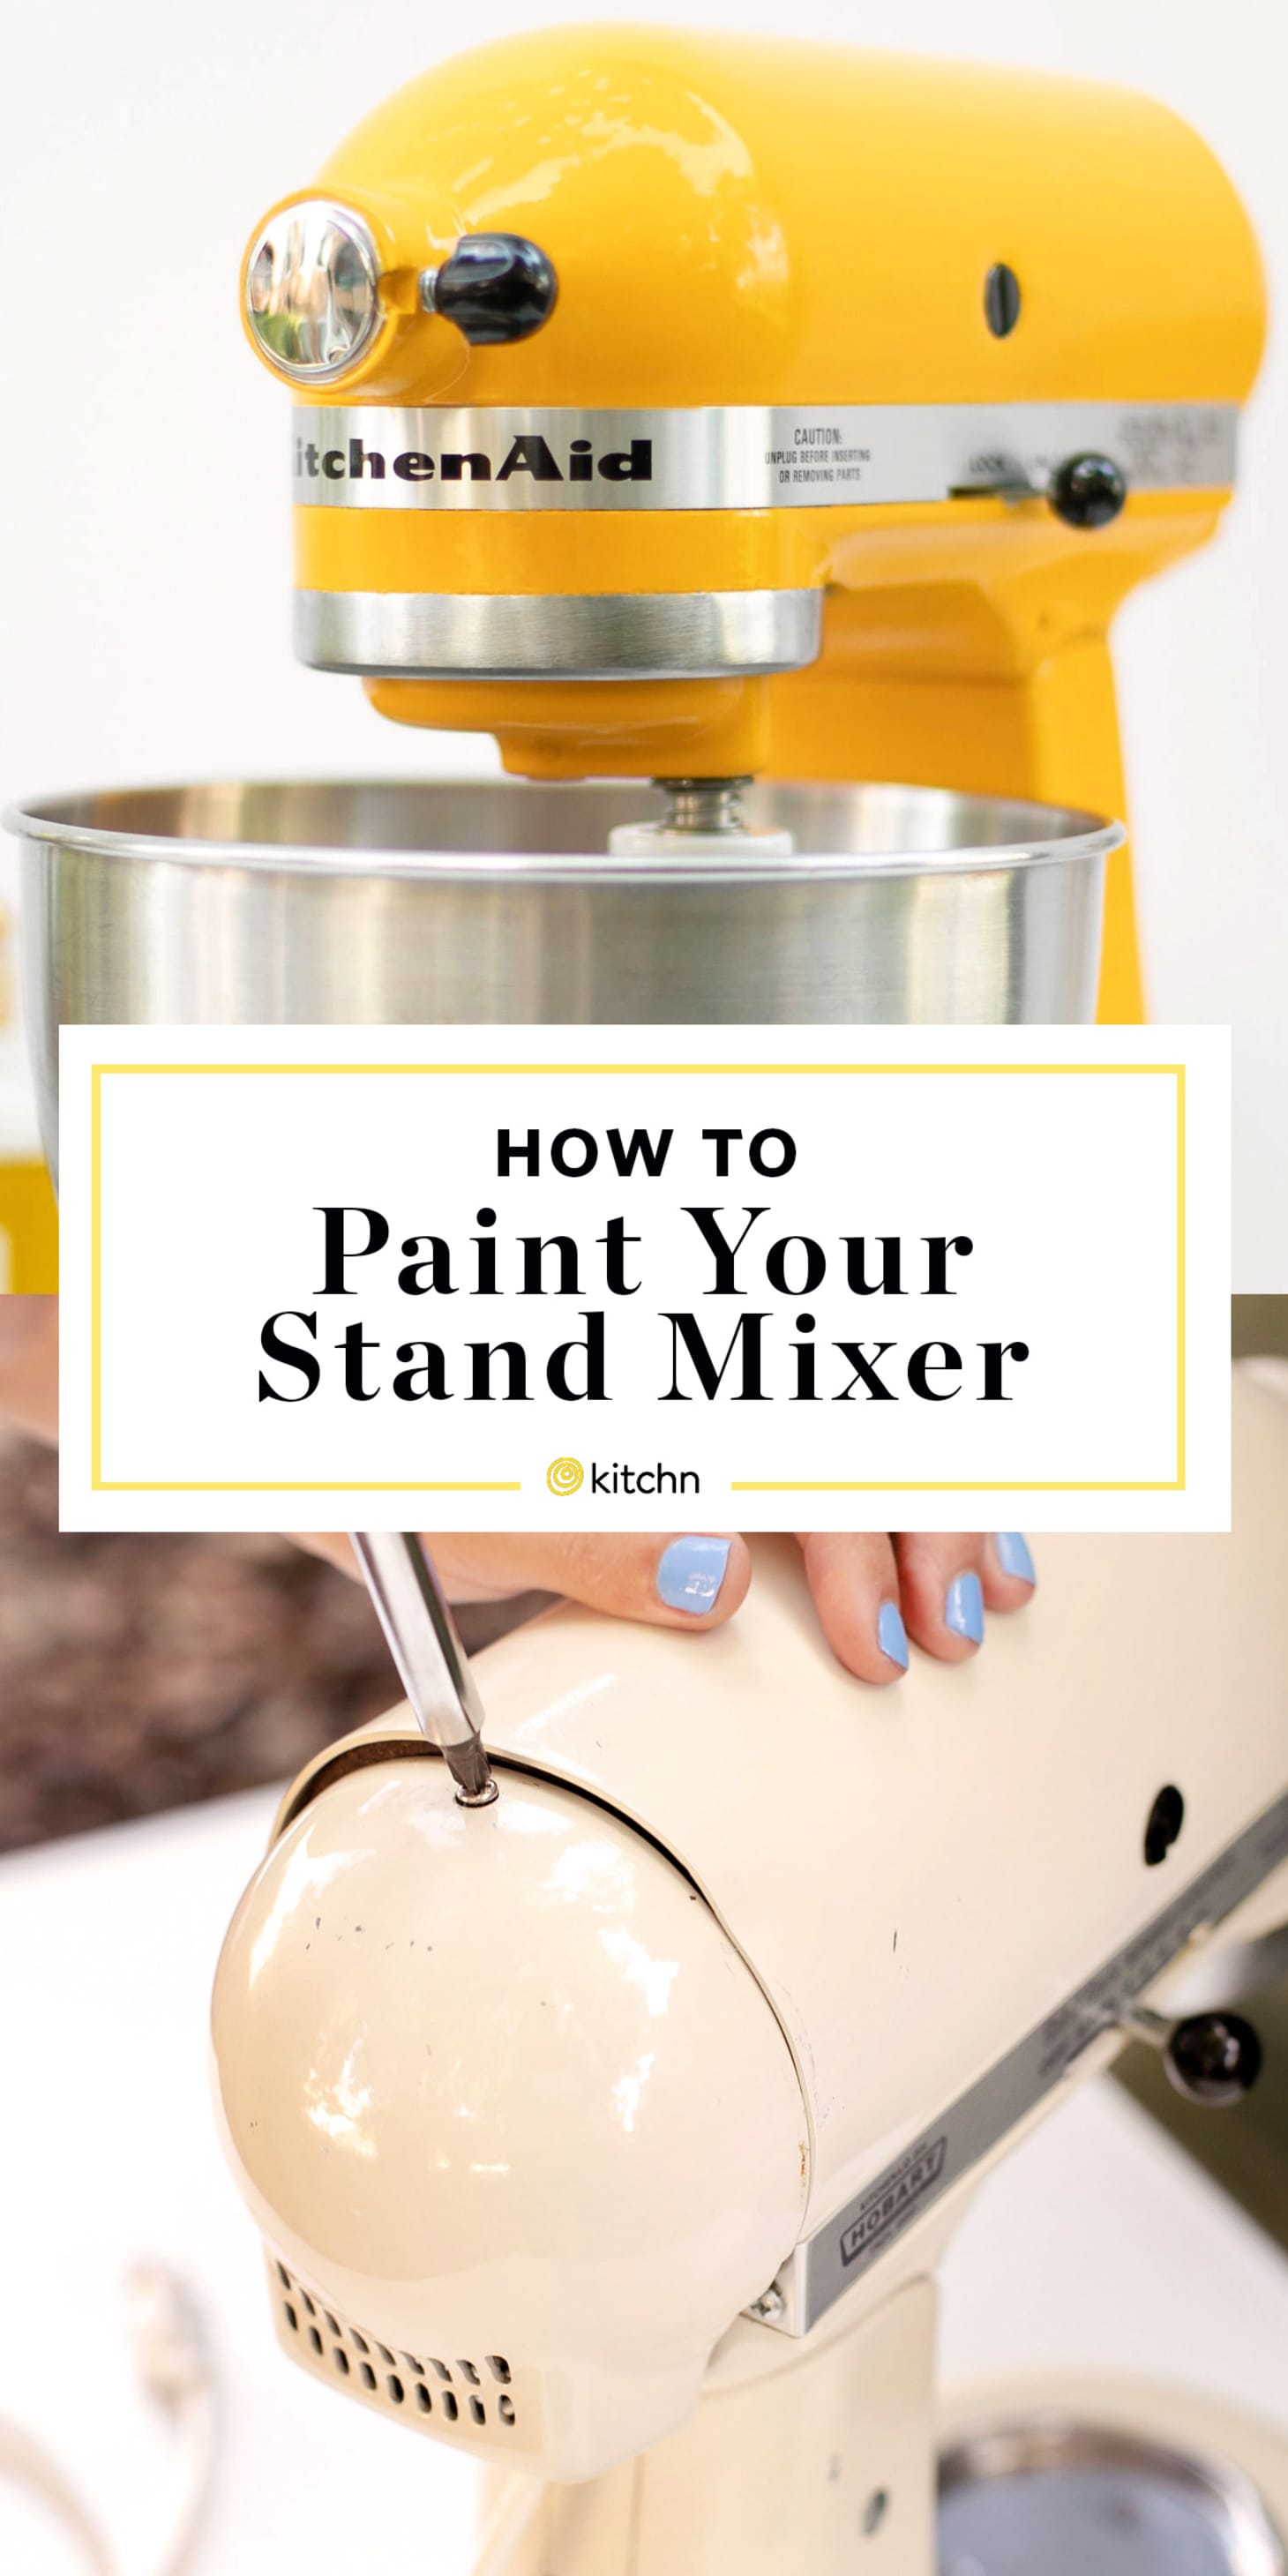 How To Paint a KitchenAid Stand Mixer | Kitchn